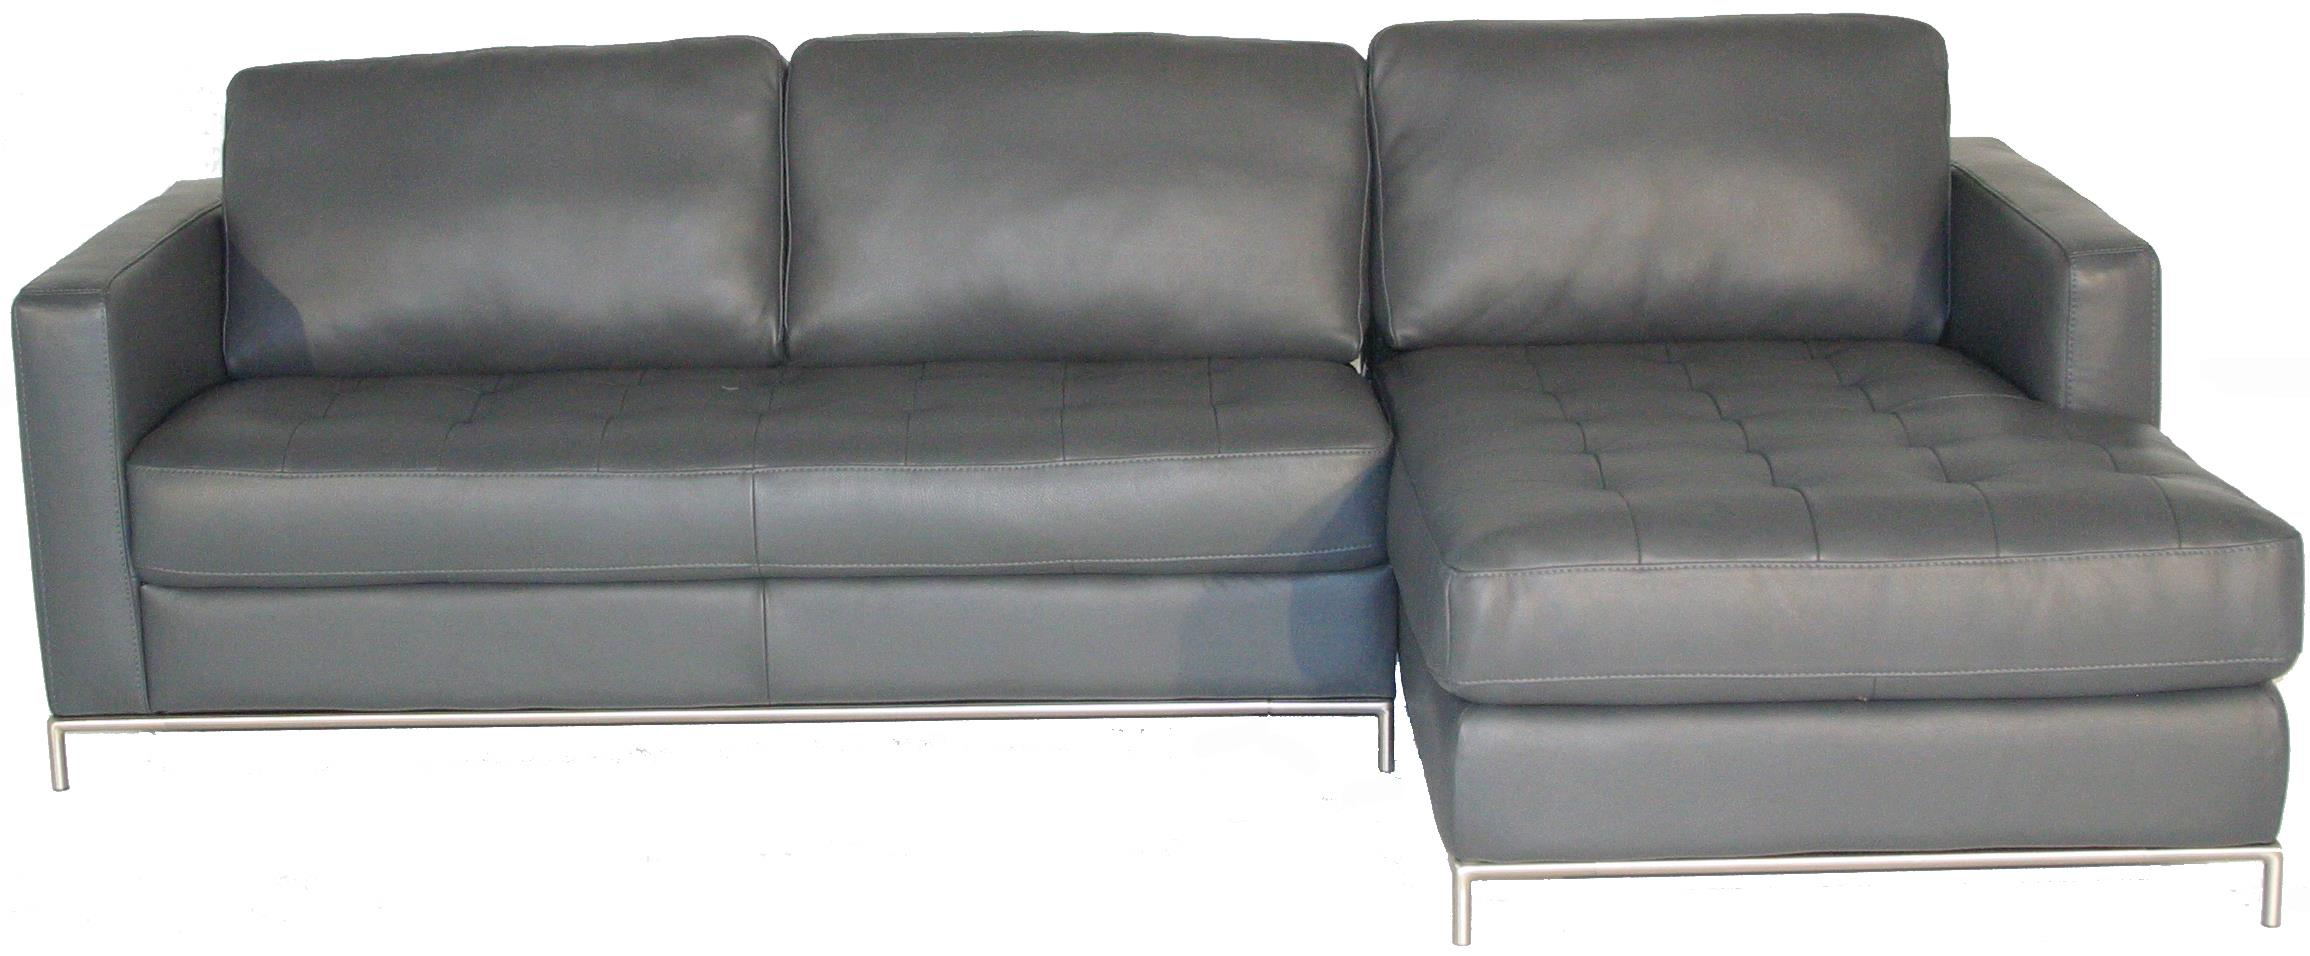 Natuzzi editions b805 right arm facing sofa chaise with for Button tufted chaise settee